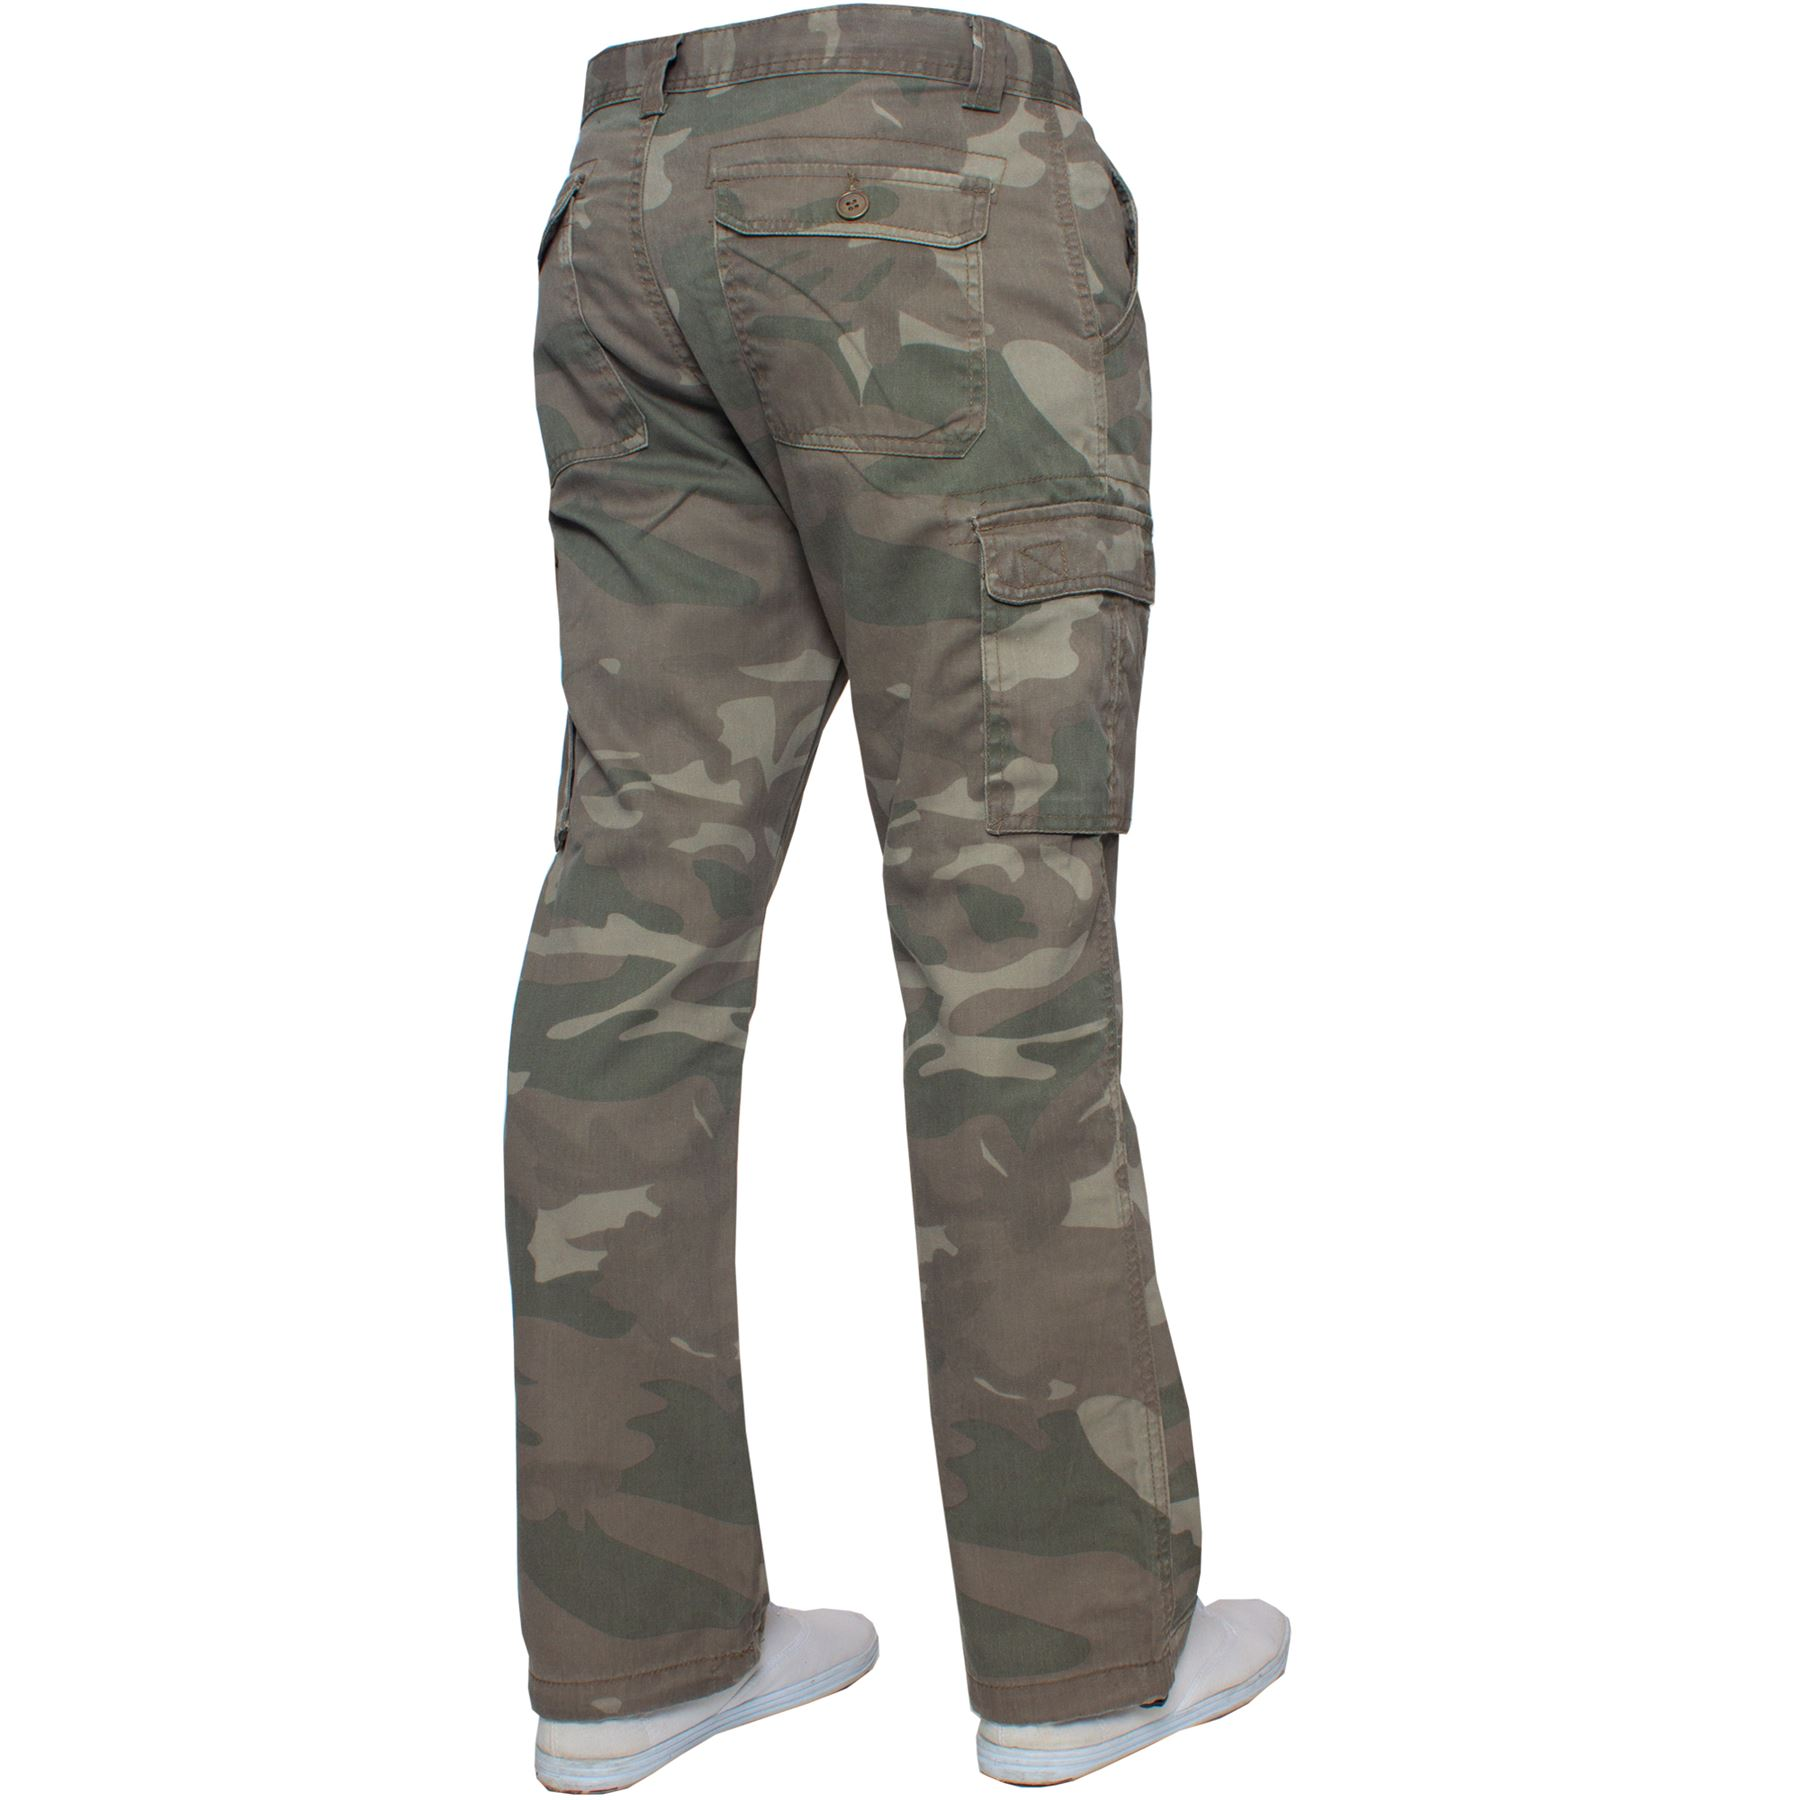 Kruze-Mens-Military-Combat-Trousers-Camouflage-Cargo-Camo-Army-Casual-Work-Pants miniatura 26